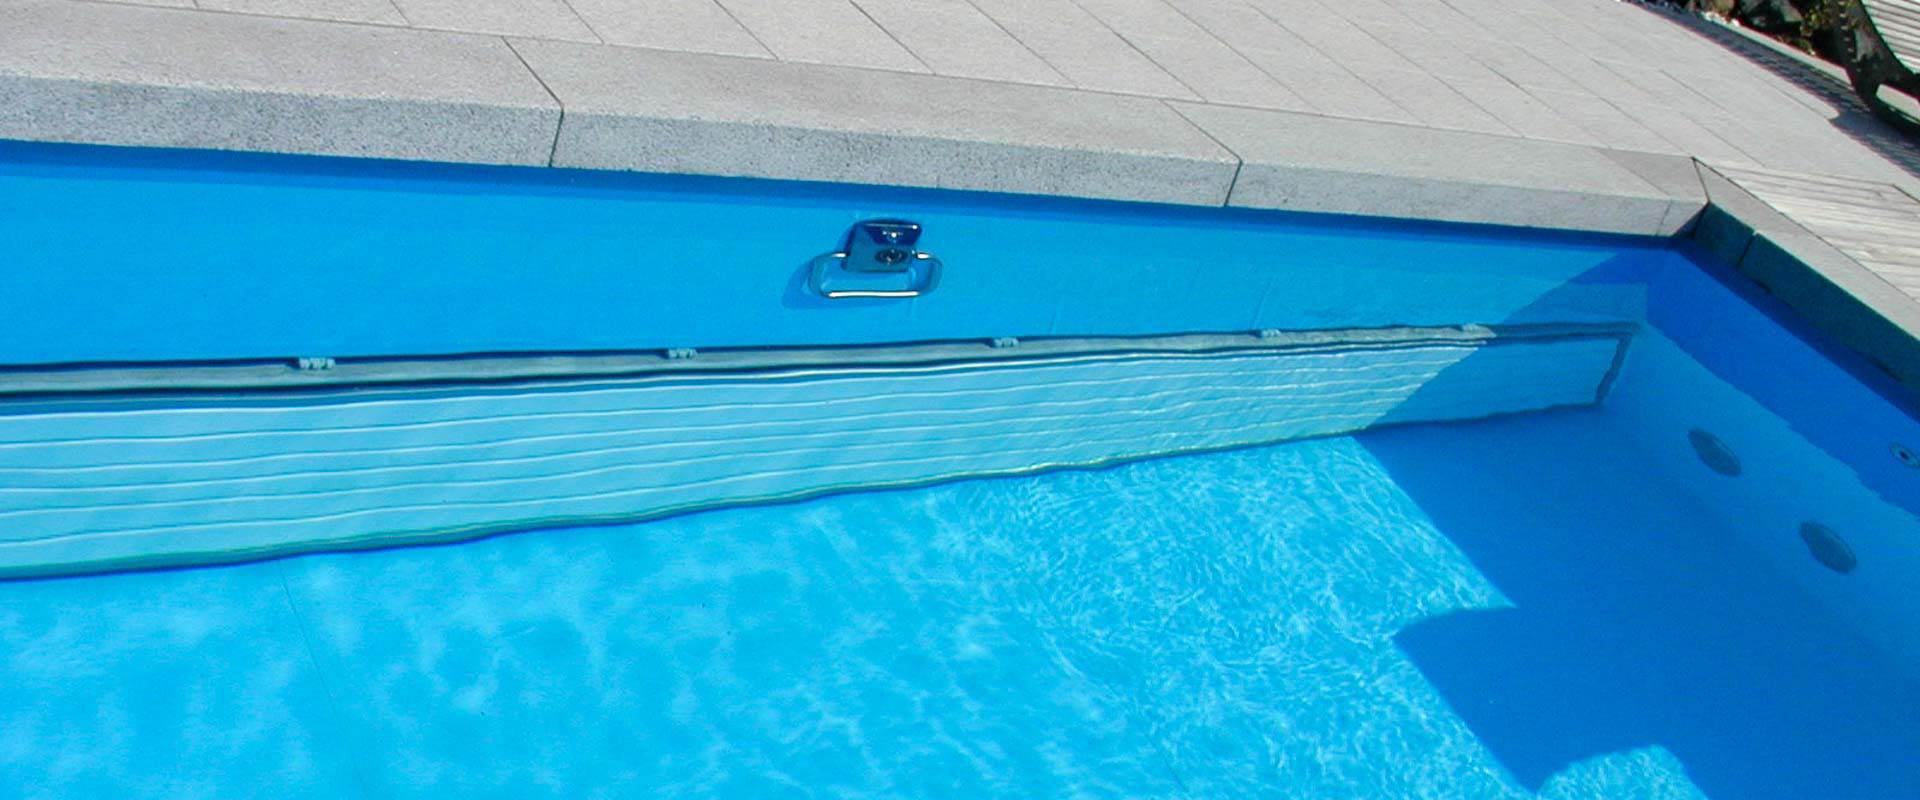 Automatic rigid pool cover system type ibs 6 grando for Automatic pool cover motor replacement